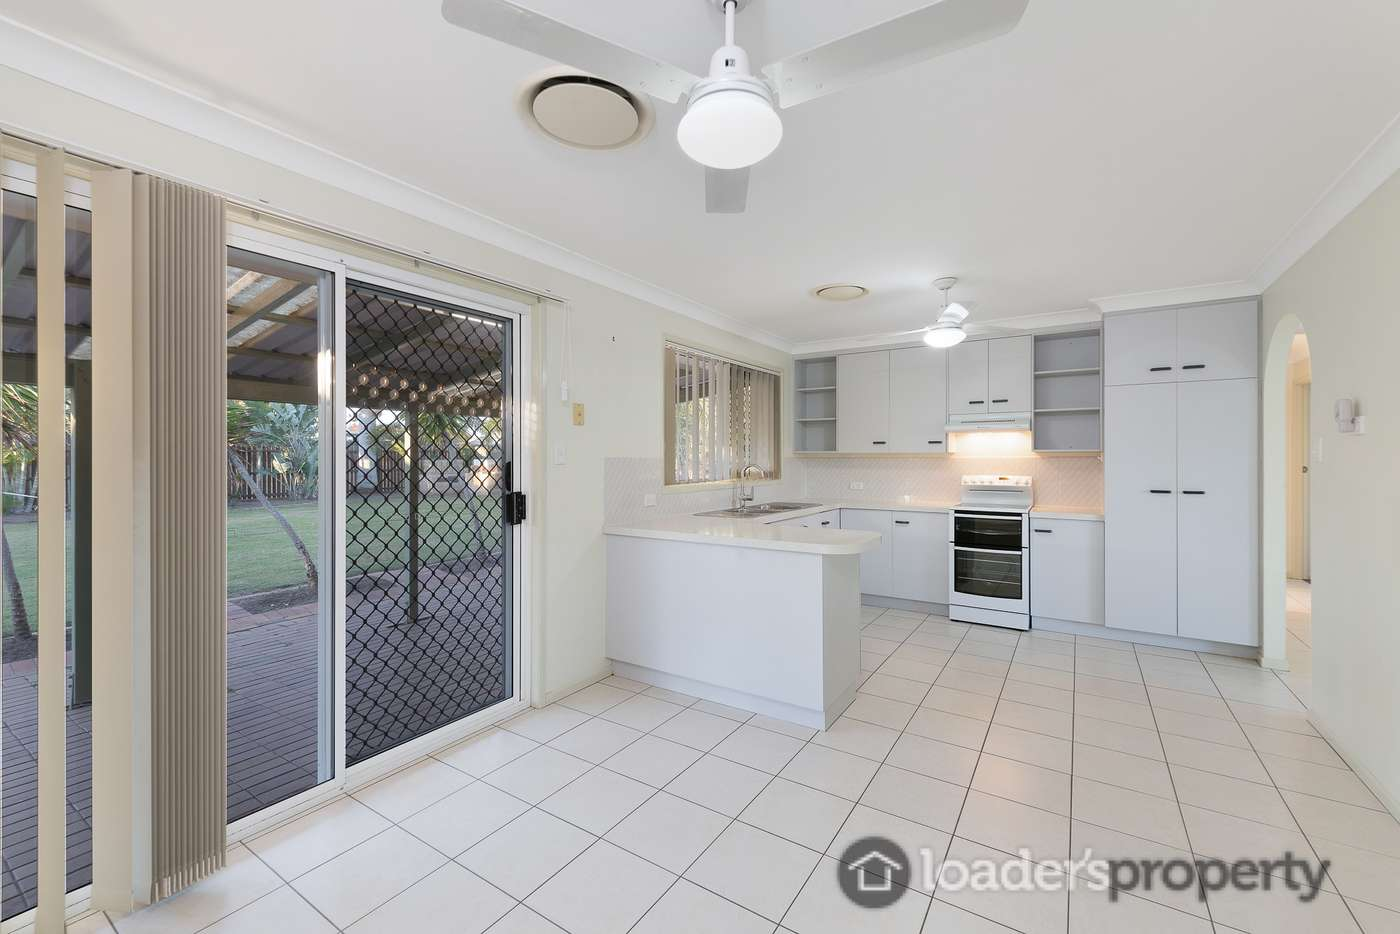 Sixth view of Homely house listing, 14 Kinghorn St, Kalkie QLD 4670